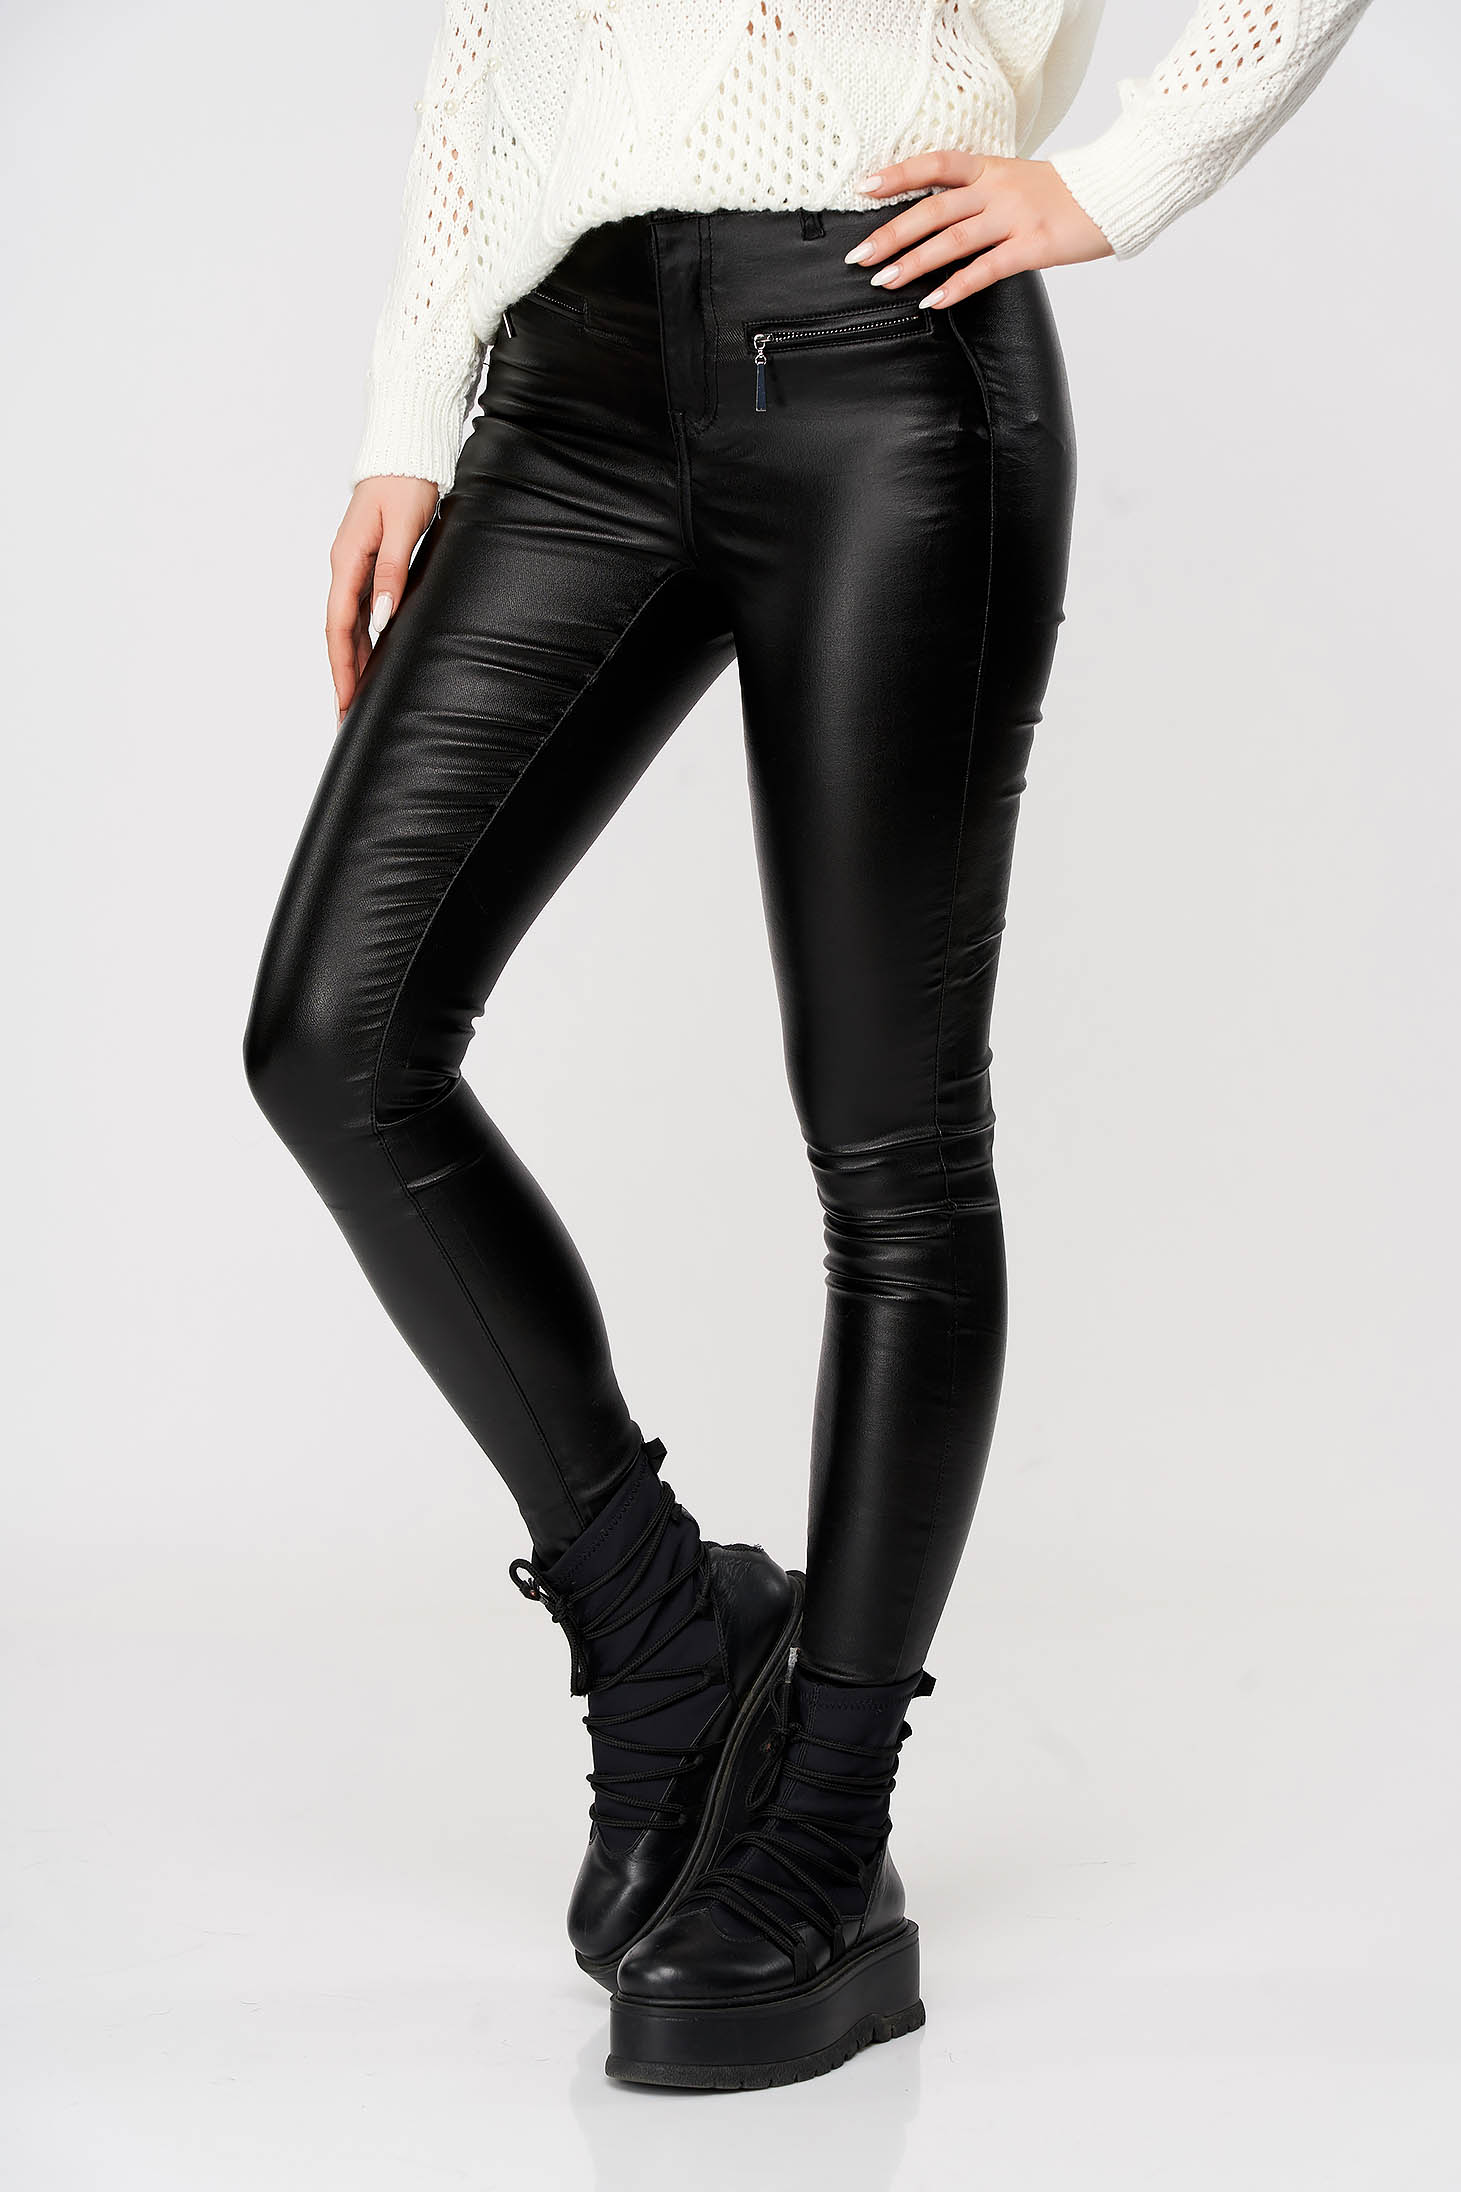 Black trousers long from ecological leather zipper accessory